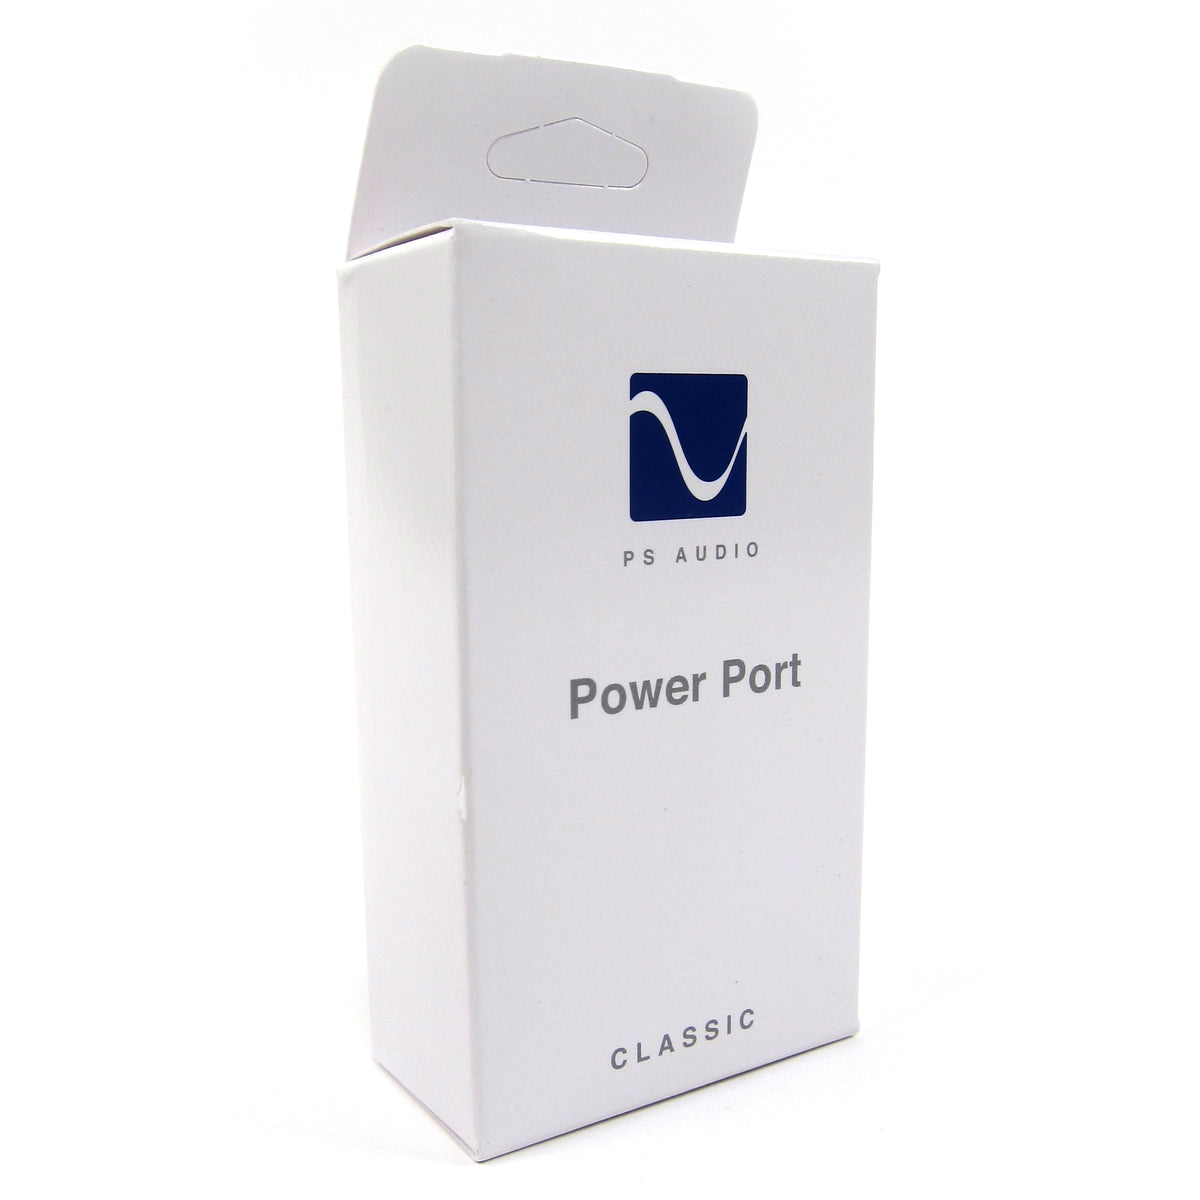 PS Audio: Power Port Classic